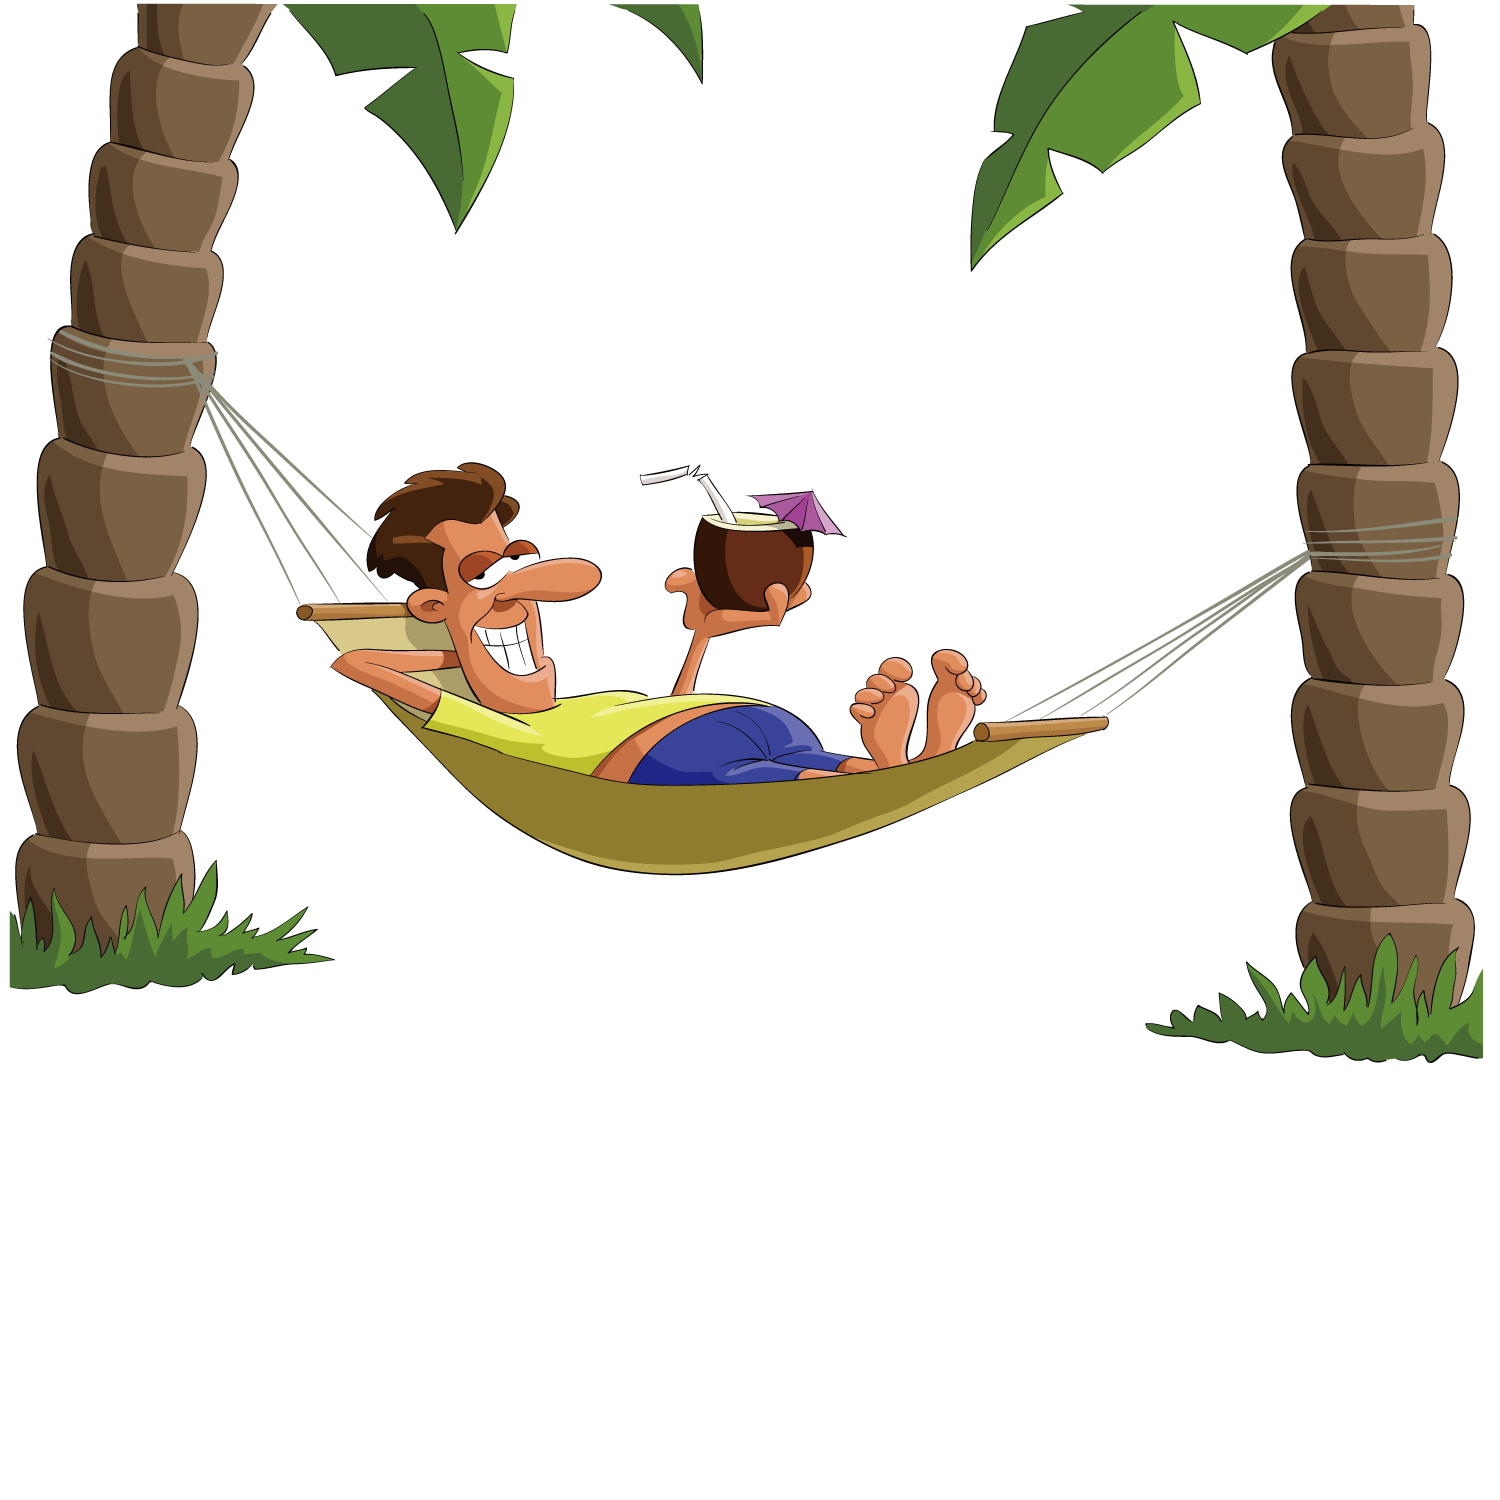 Palm tree and hammock clipart jpg free stock Drawing - Lying on top of the hammock man 1500*1500 transprent Png ... jpg free stock